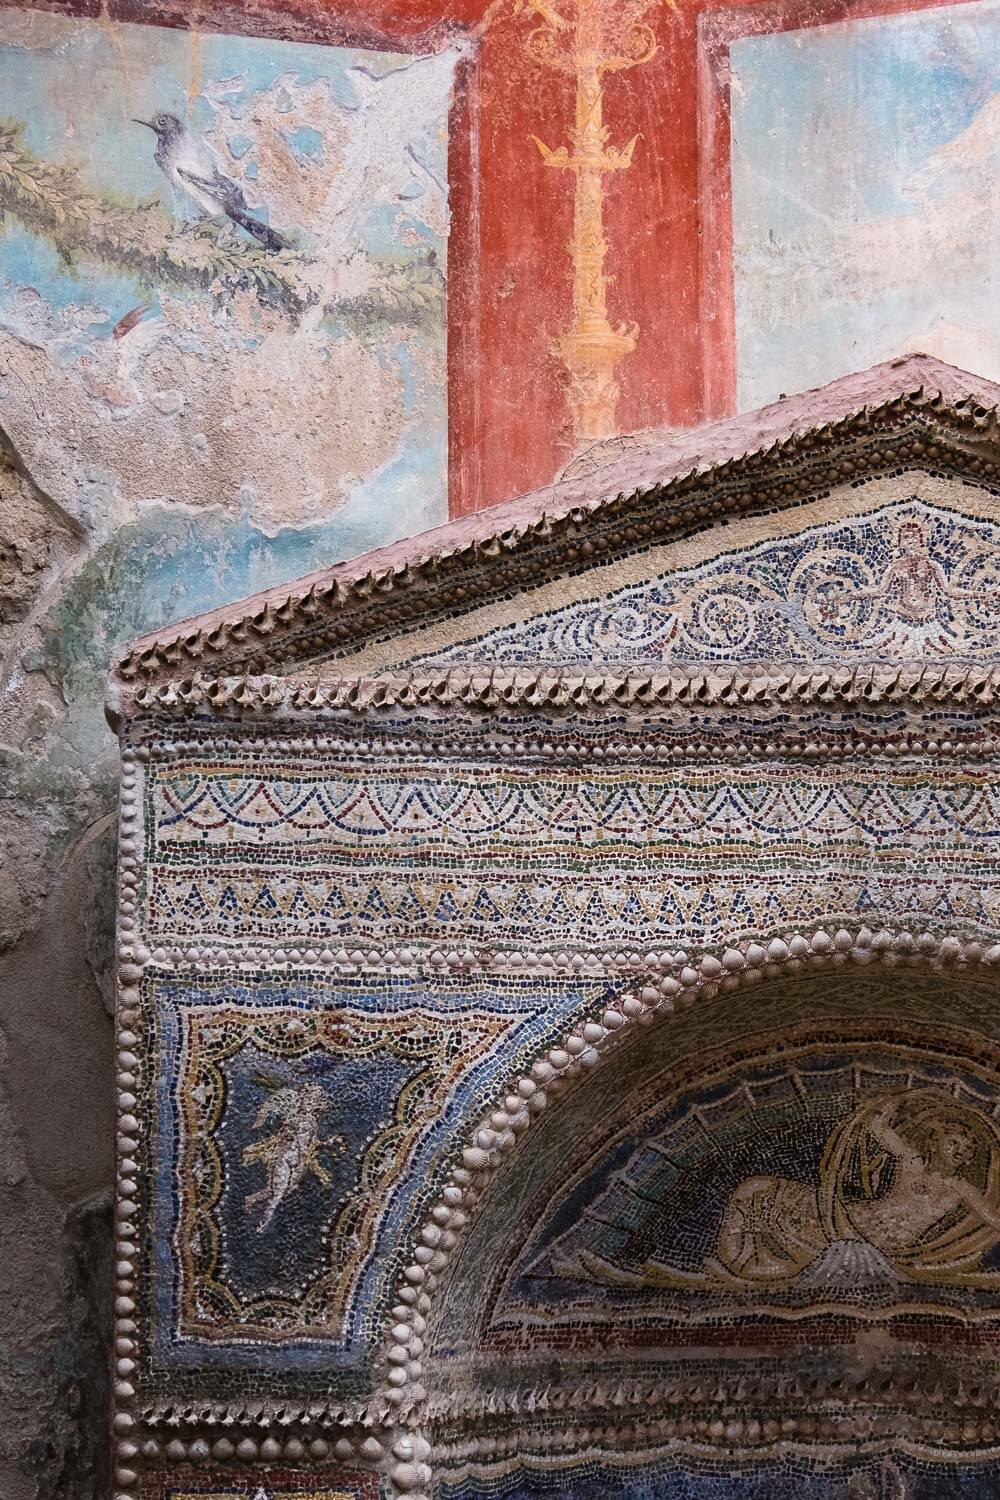 """Intricate frescoes and mosaics, Pompeii. Travel photography and guide by © Natasha Lequepeys for """"And Then I Met Yoko"""". #pompeii #italy #fujifilm #travelphotography"""